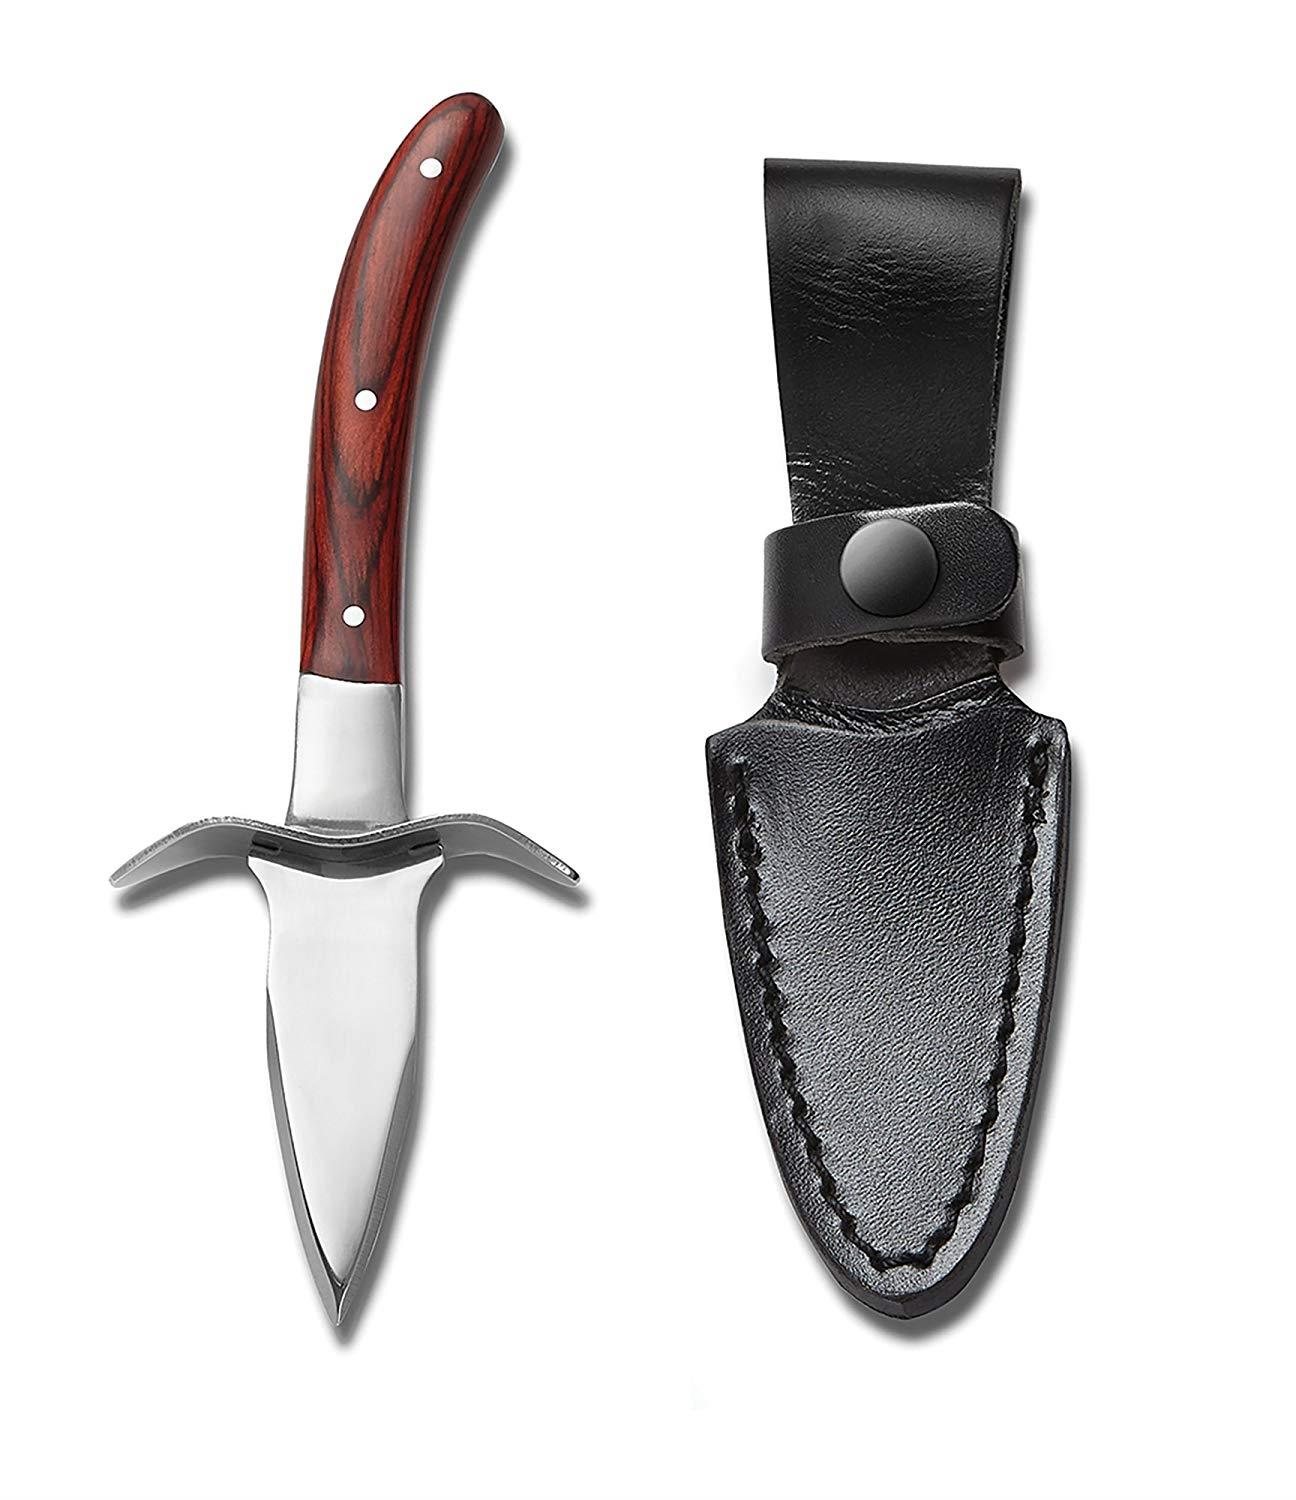 Outset Oyster Knife With Case